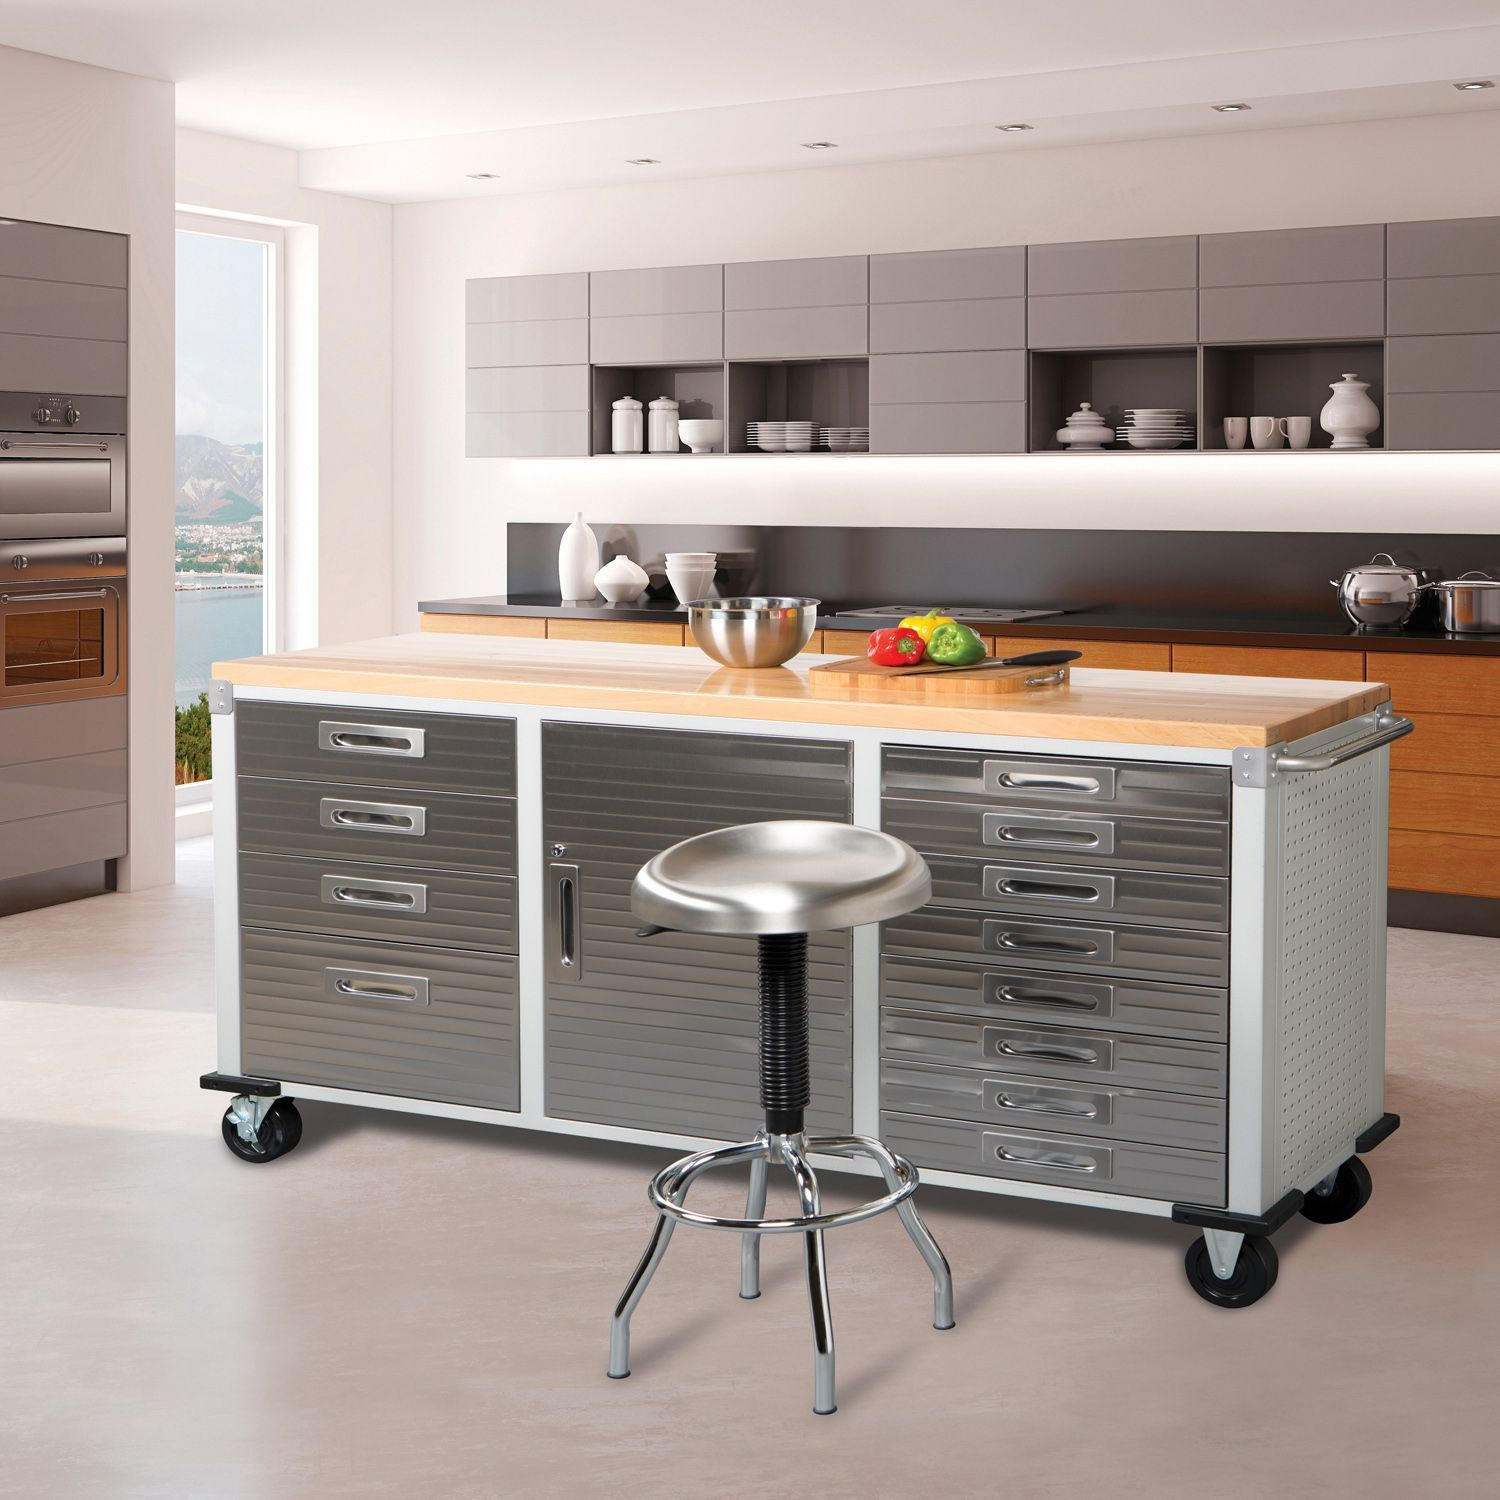 Industrial Cabinets Every Garage Or Kitchen Needs Men S